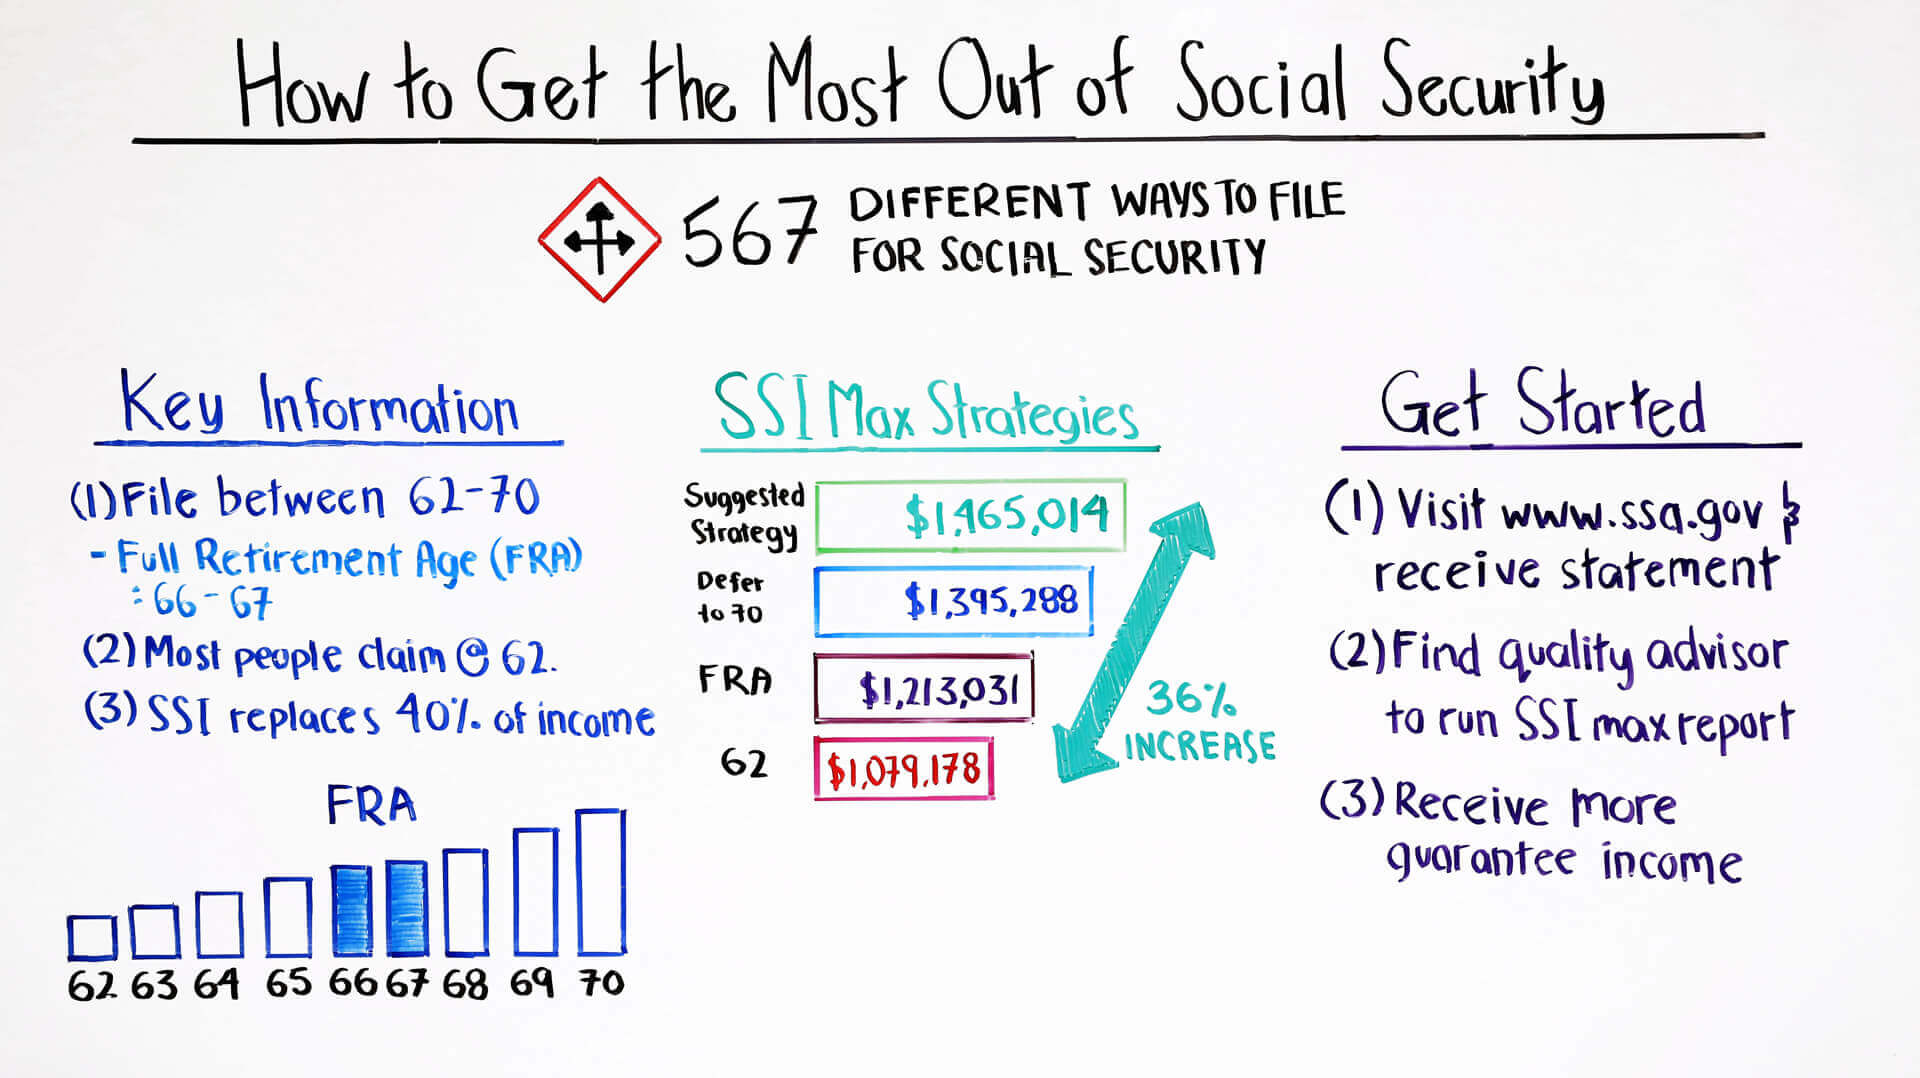 how to get the most out of social security